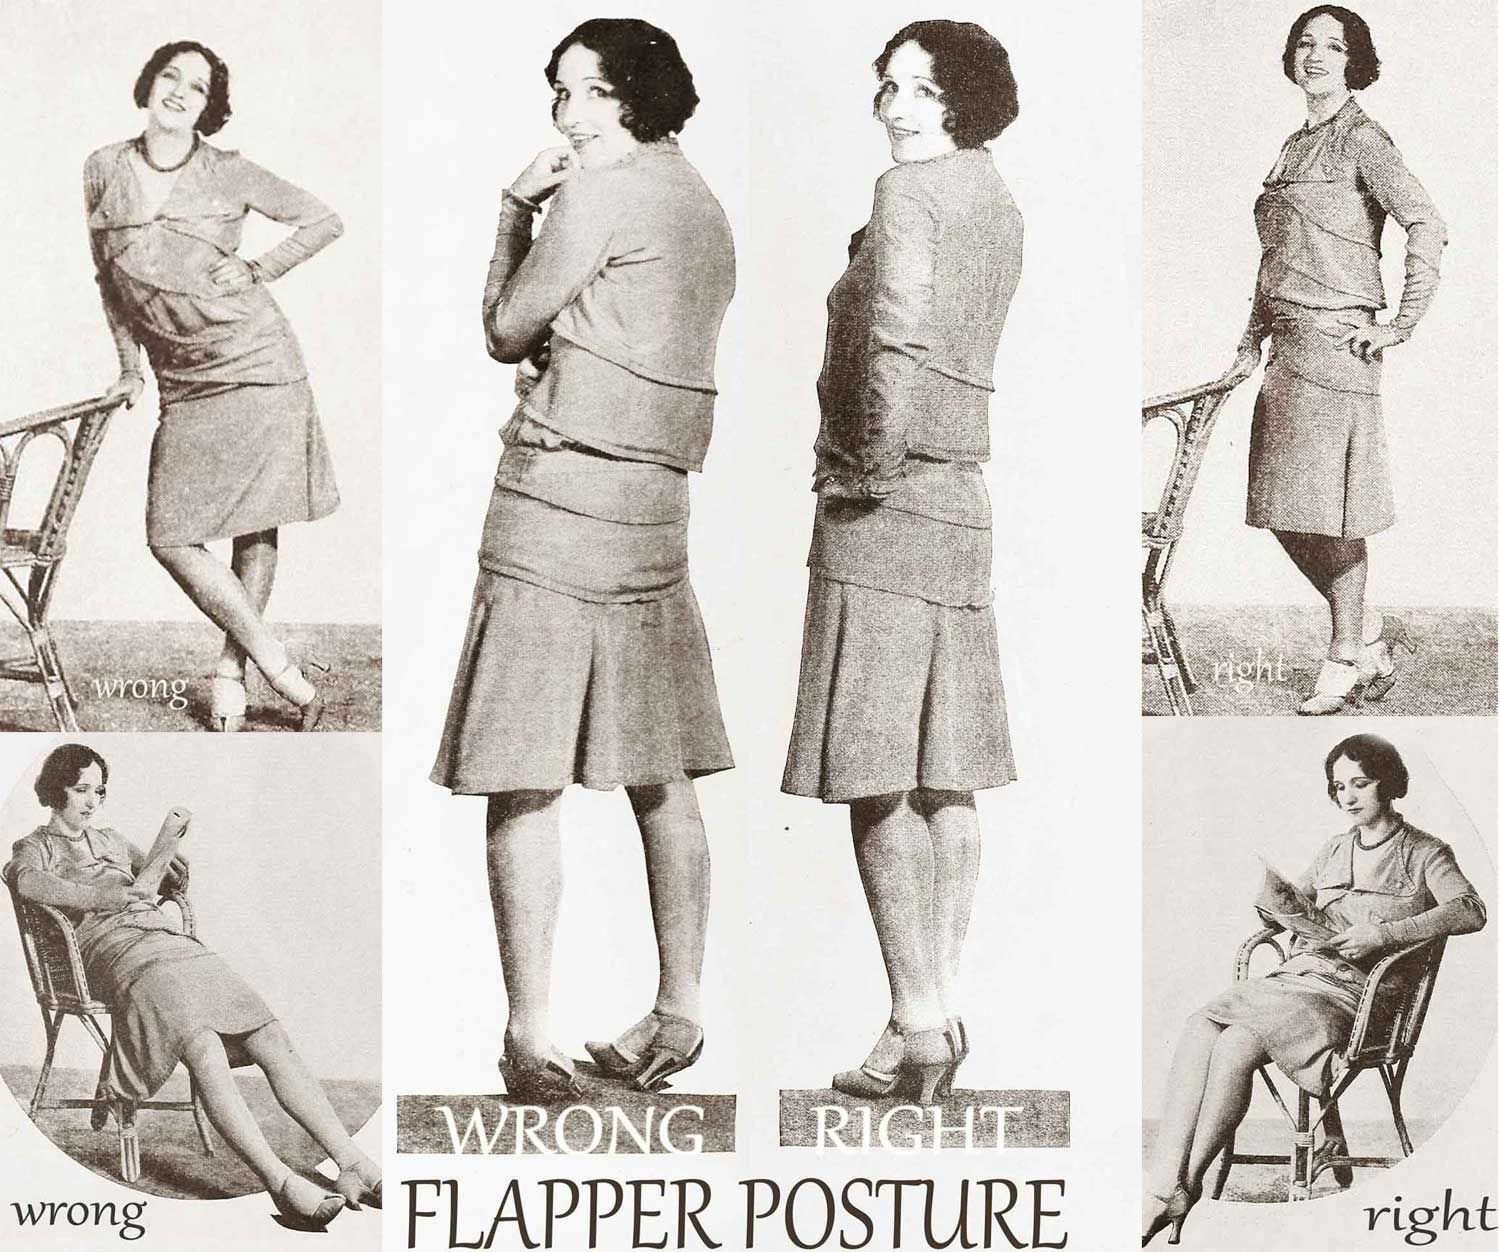 1920s-Fashion---Correct-Postures-for-a-Flapper---1928-main